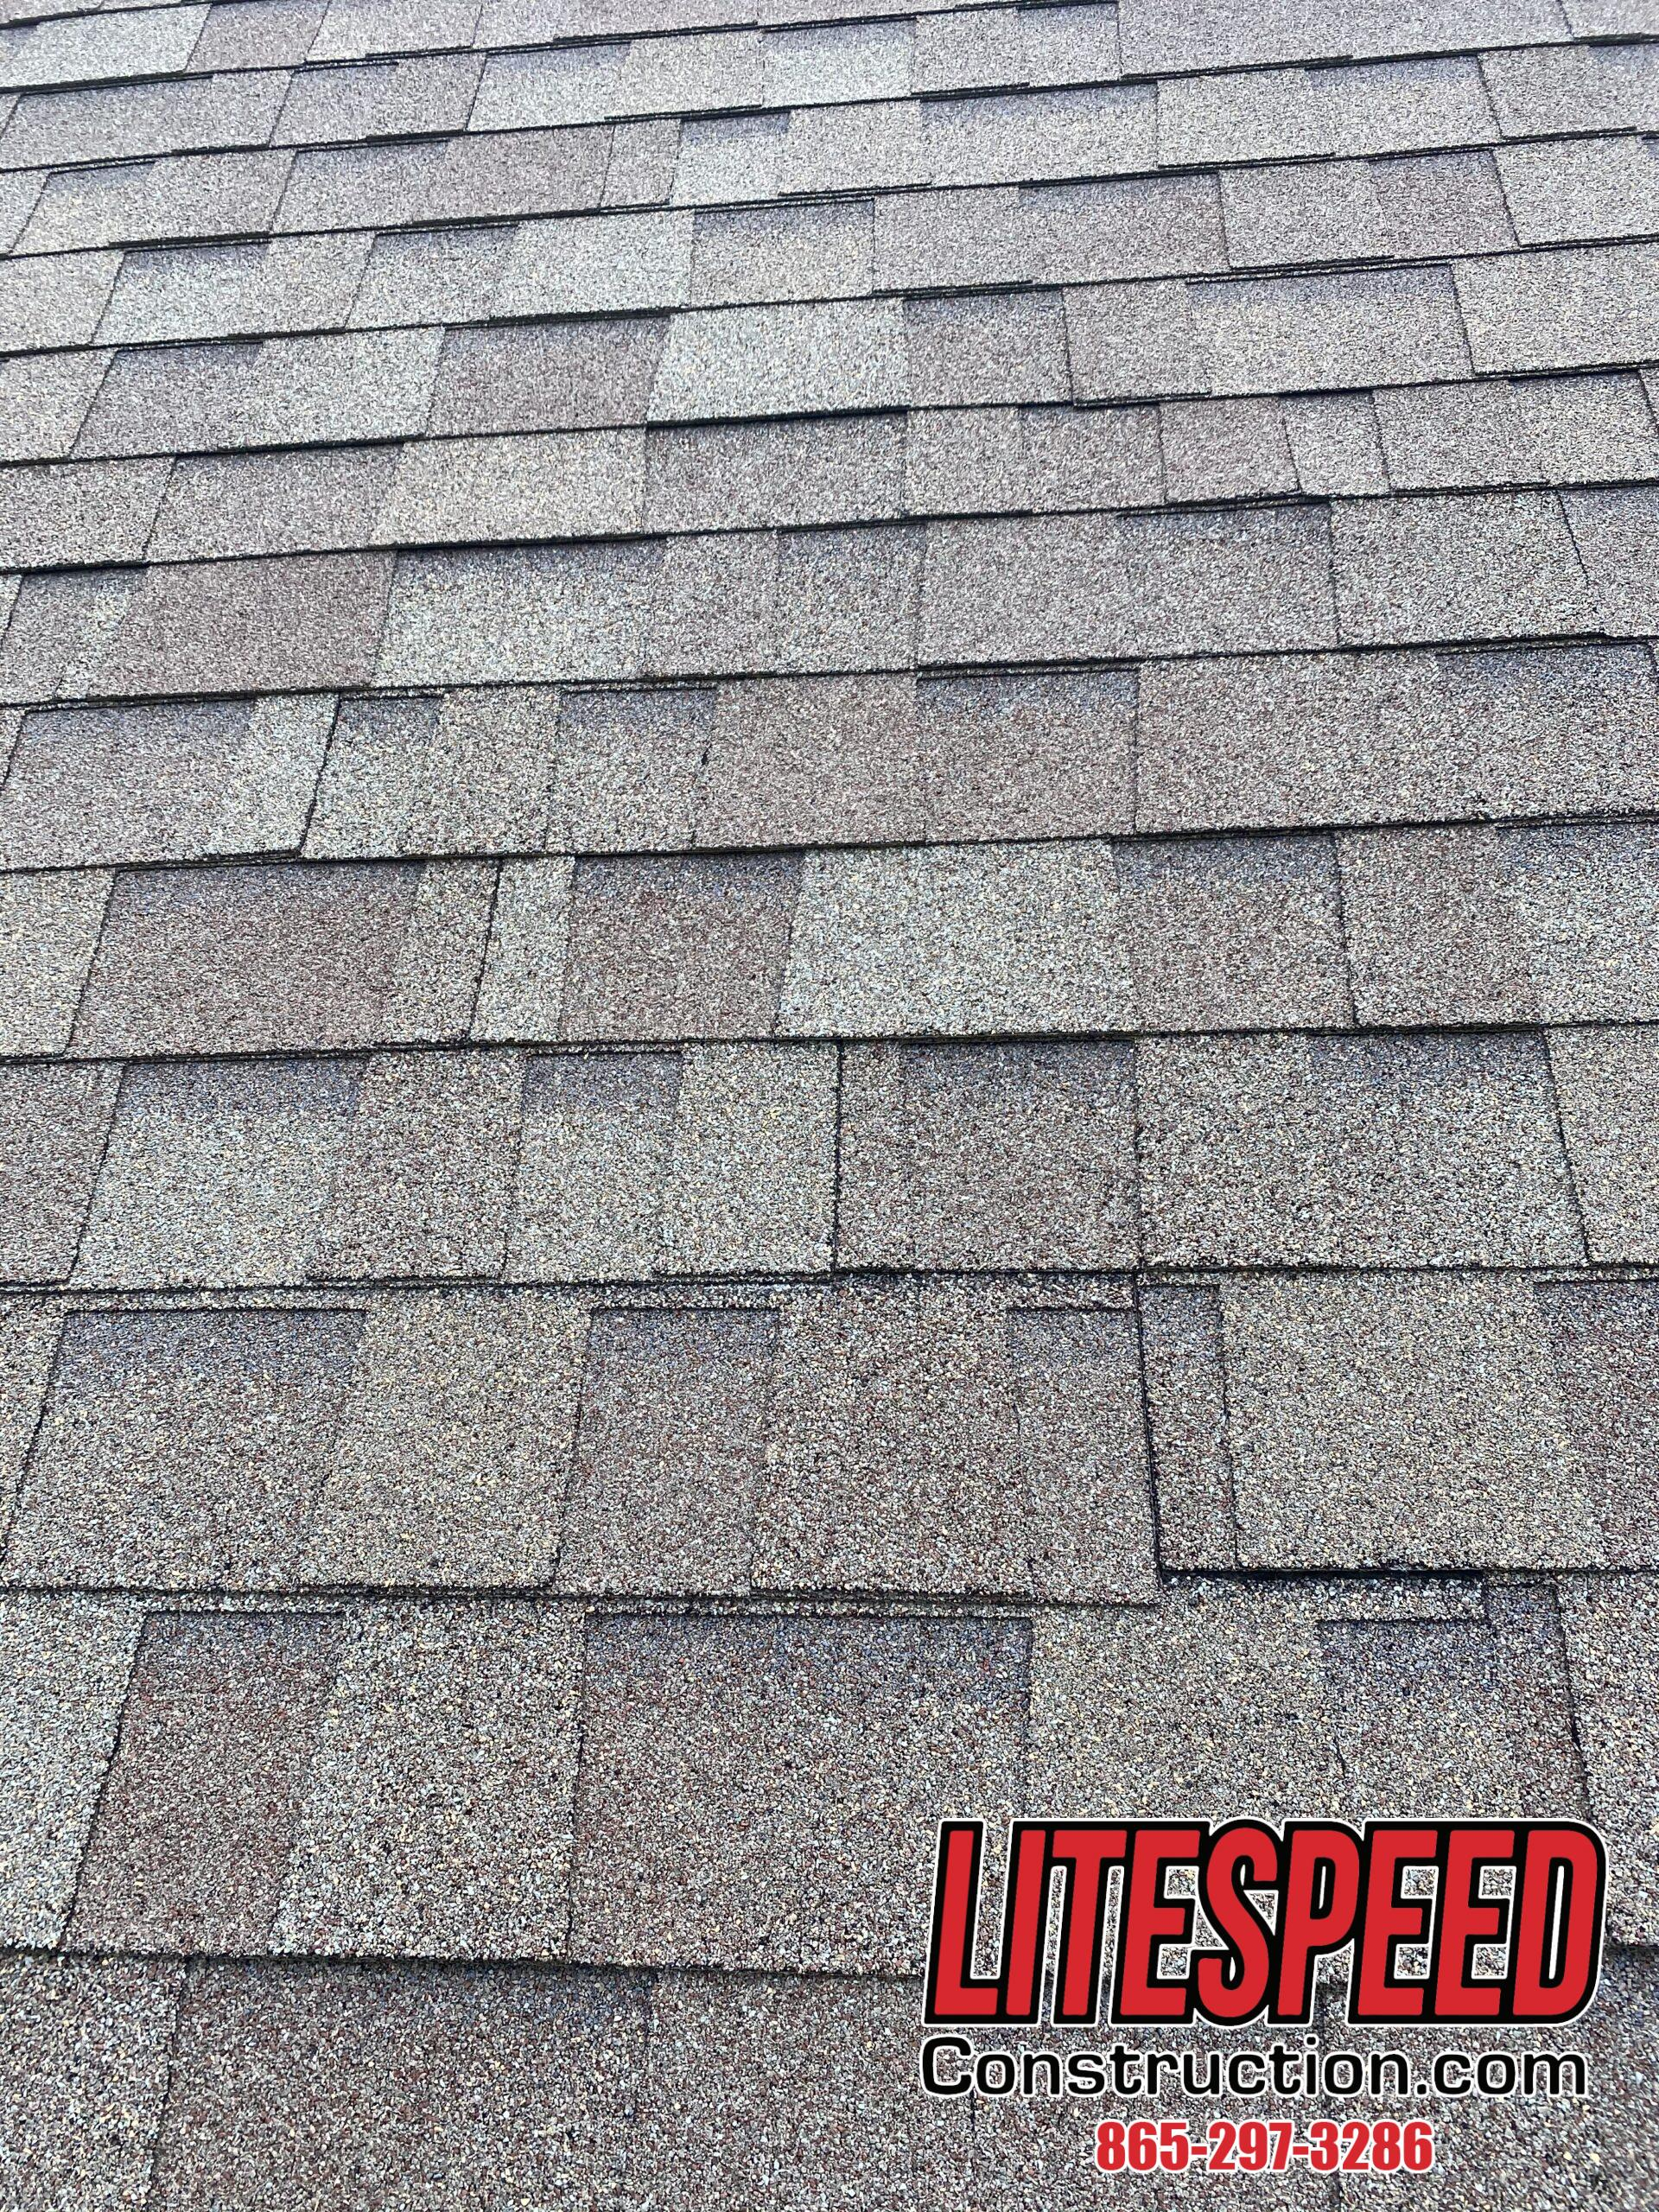 This is a picture of shingles that is appropriately staggered